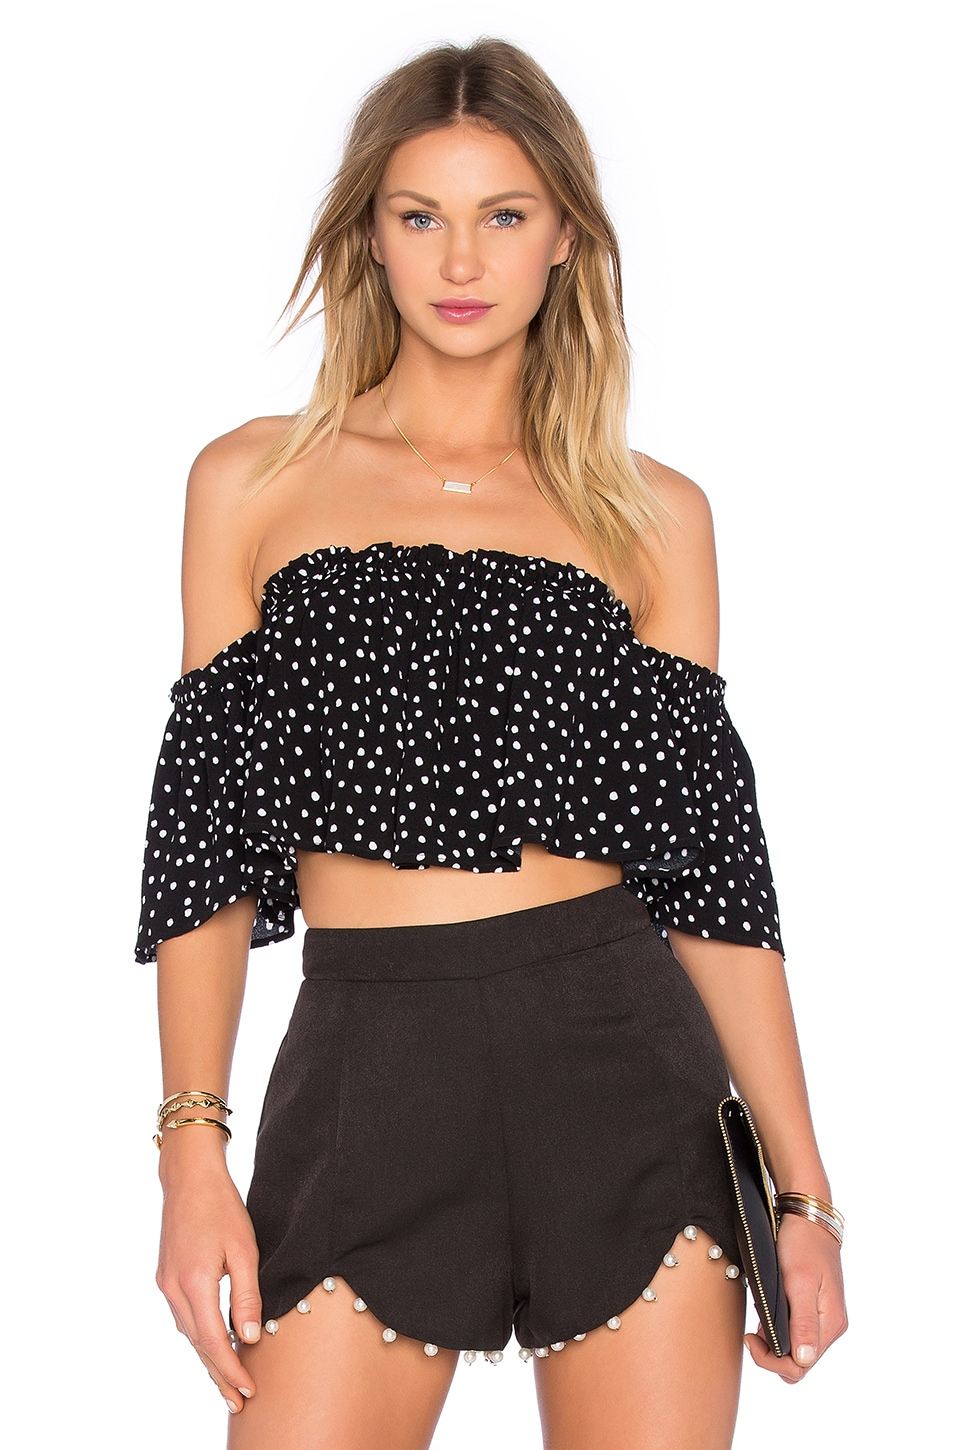 NBD Sunset Off The Shoulder Top in Polka Dot